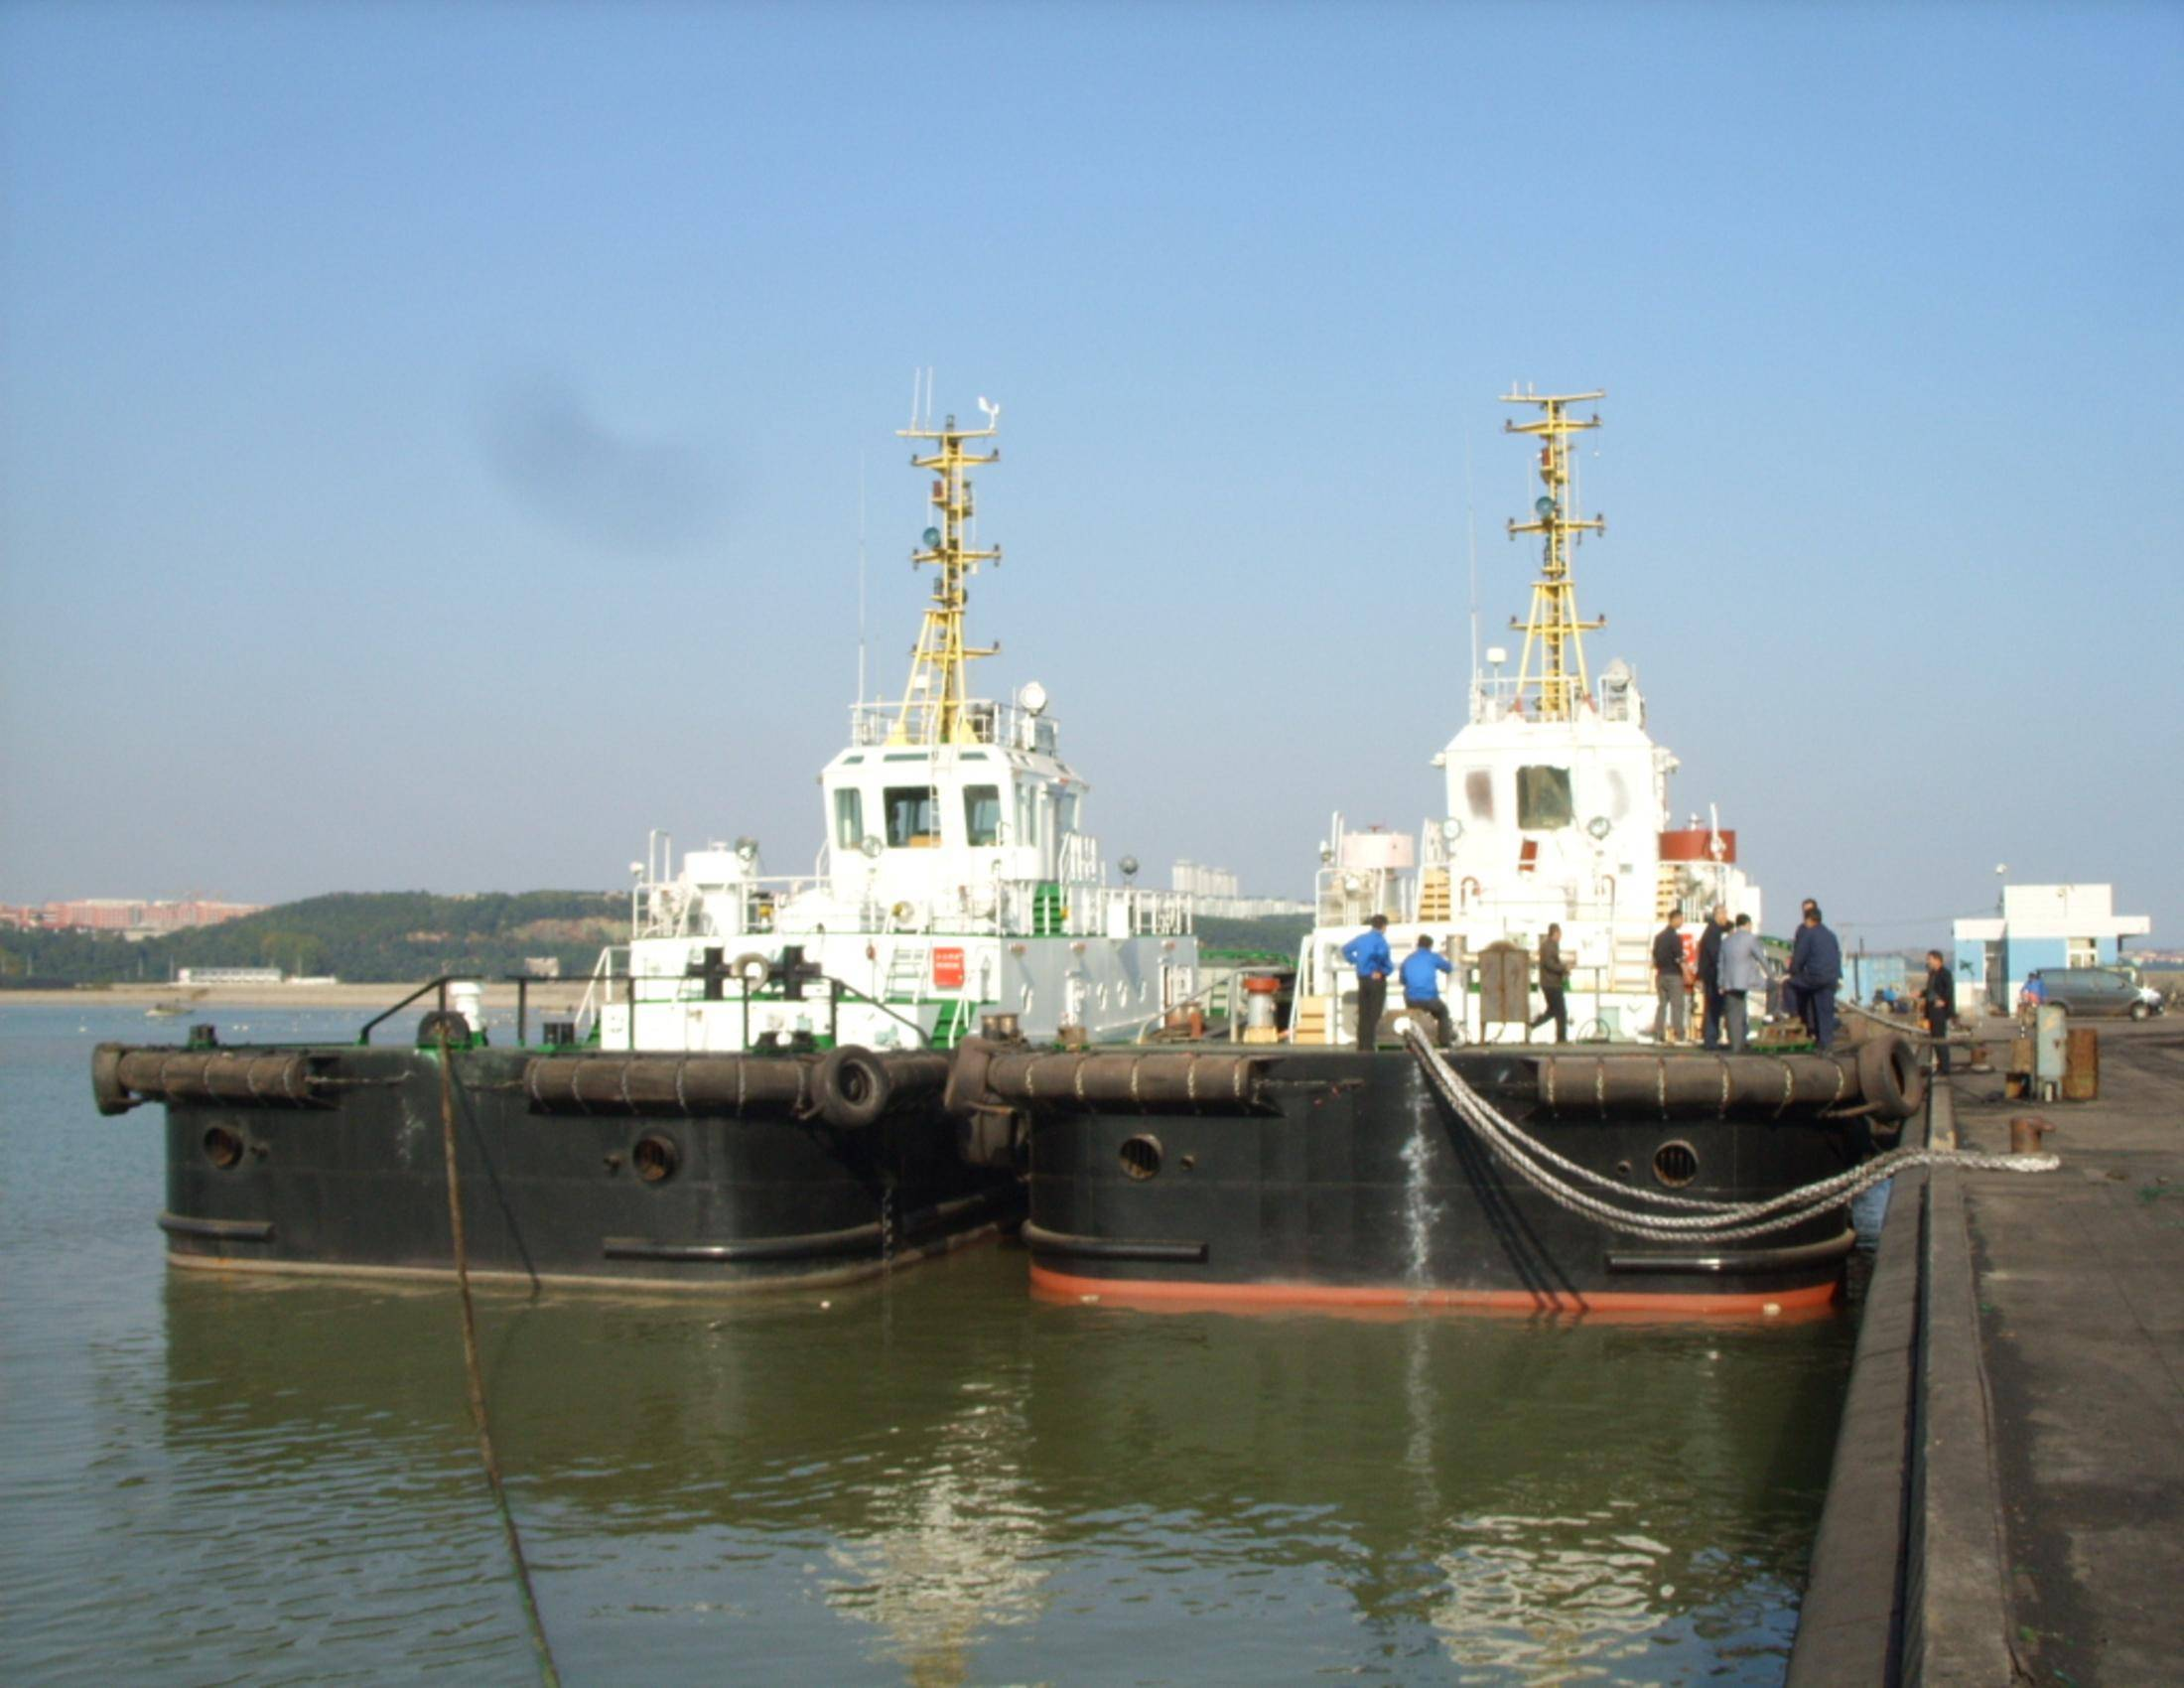 TWO SISTER 5000bhp NEWBUILDING ASD TUGBOATS FOR RESALE